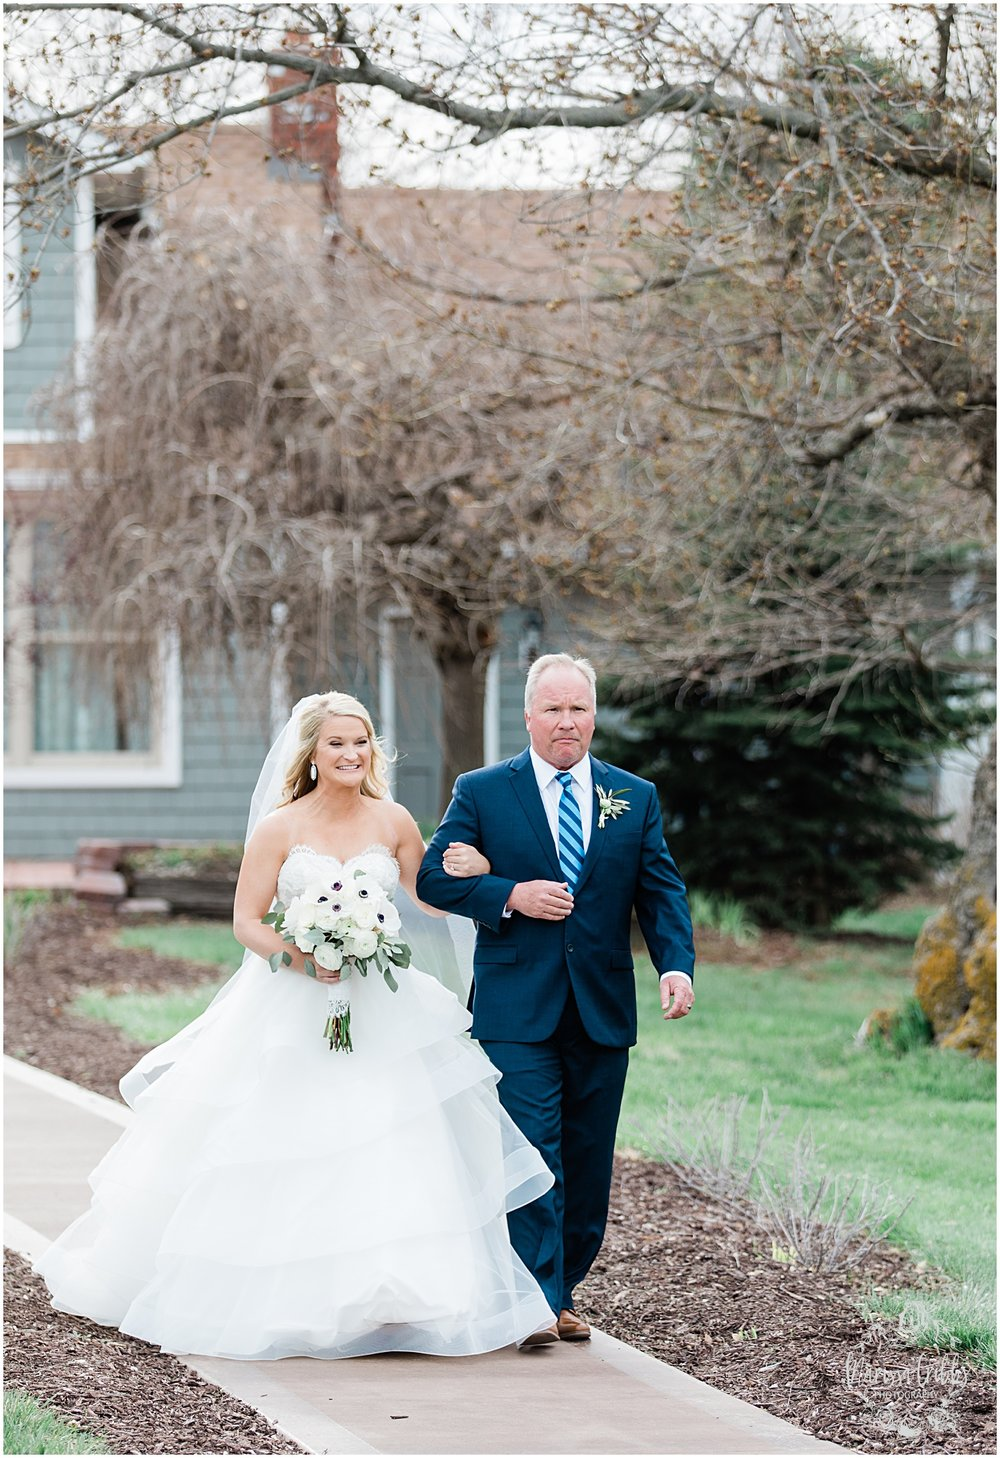 TILSON WEDDING | THE LEGACY AT GREEN HILLS | SIMPLE ELEGANCE | MARISSA CRIBBS PHOTOGRAPHY_4701.jpg